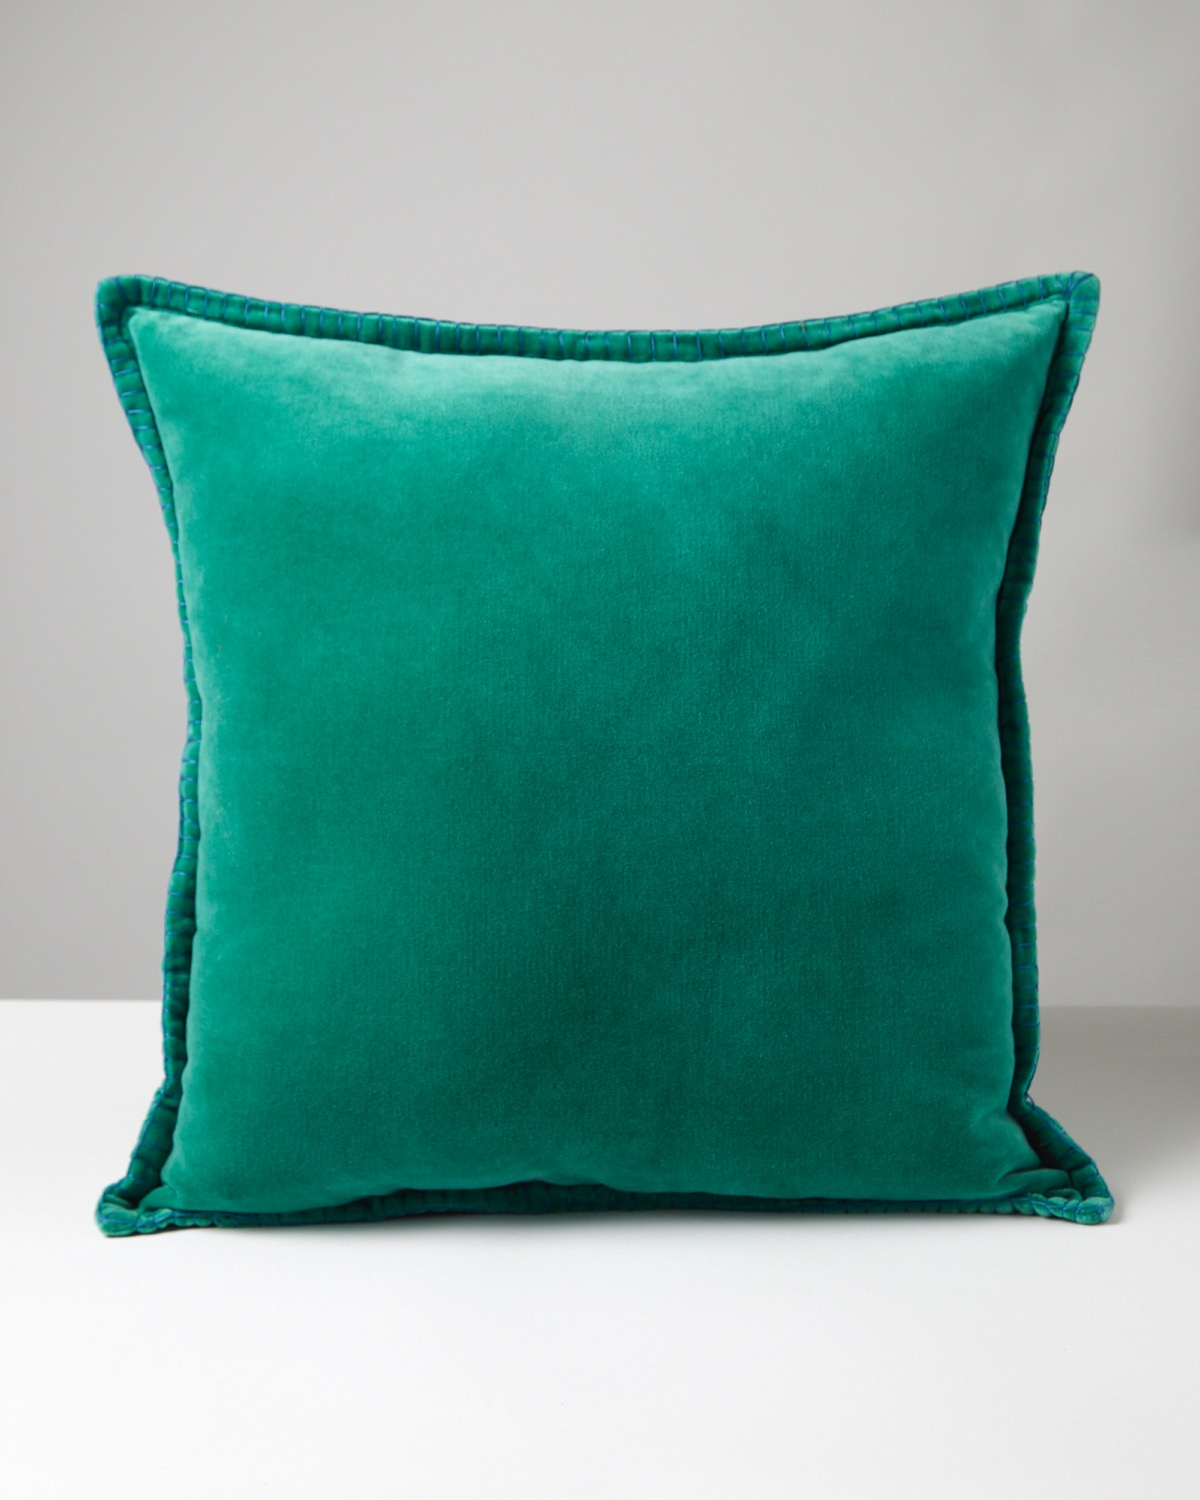 Dunnes Stores Green Carolyn Donnelly Eclectic Velvet Blanket Stitch Cushion